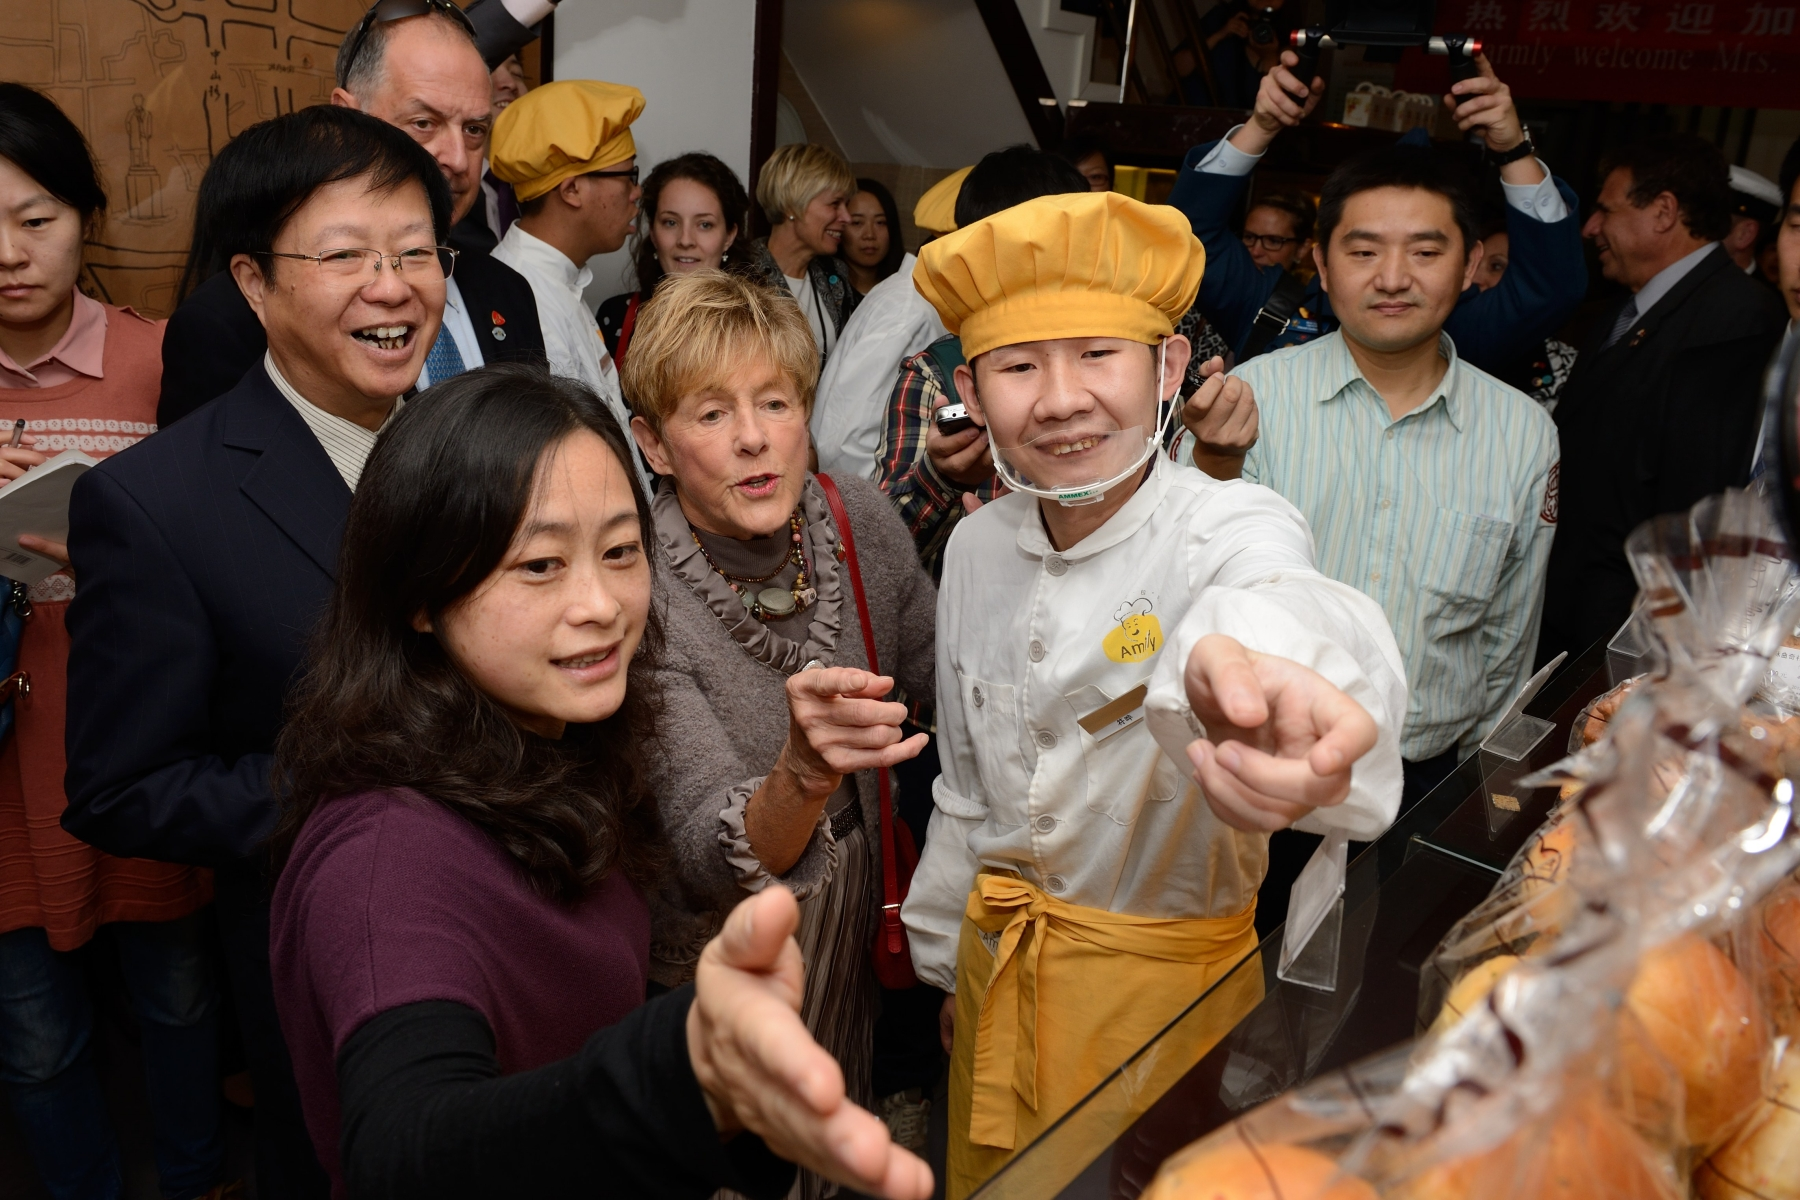 Her Excellency started her day in Nanjing with a visit to the Amity Foundation Bakery where she was introduced to their wide-ranging projects and services